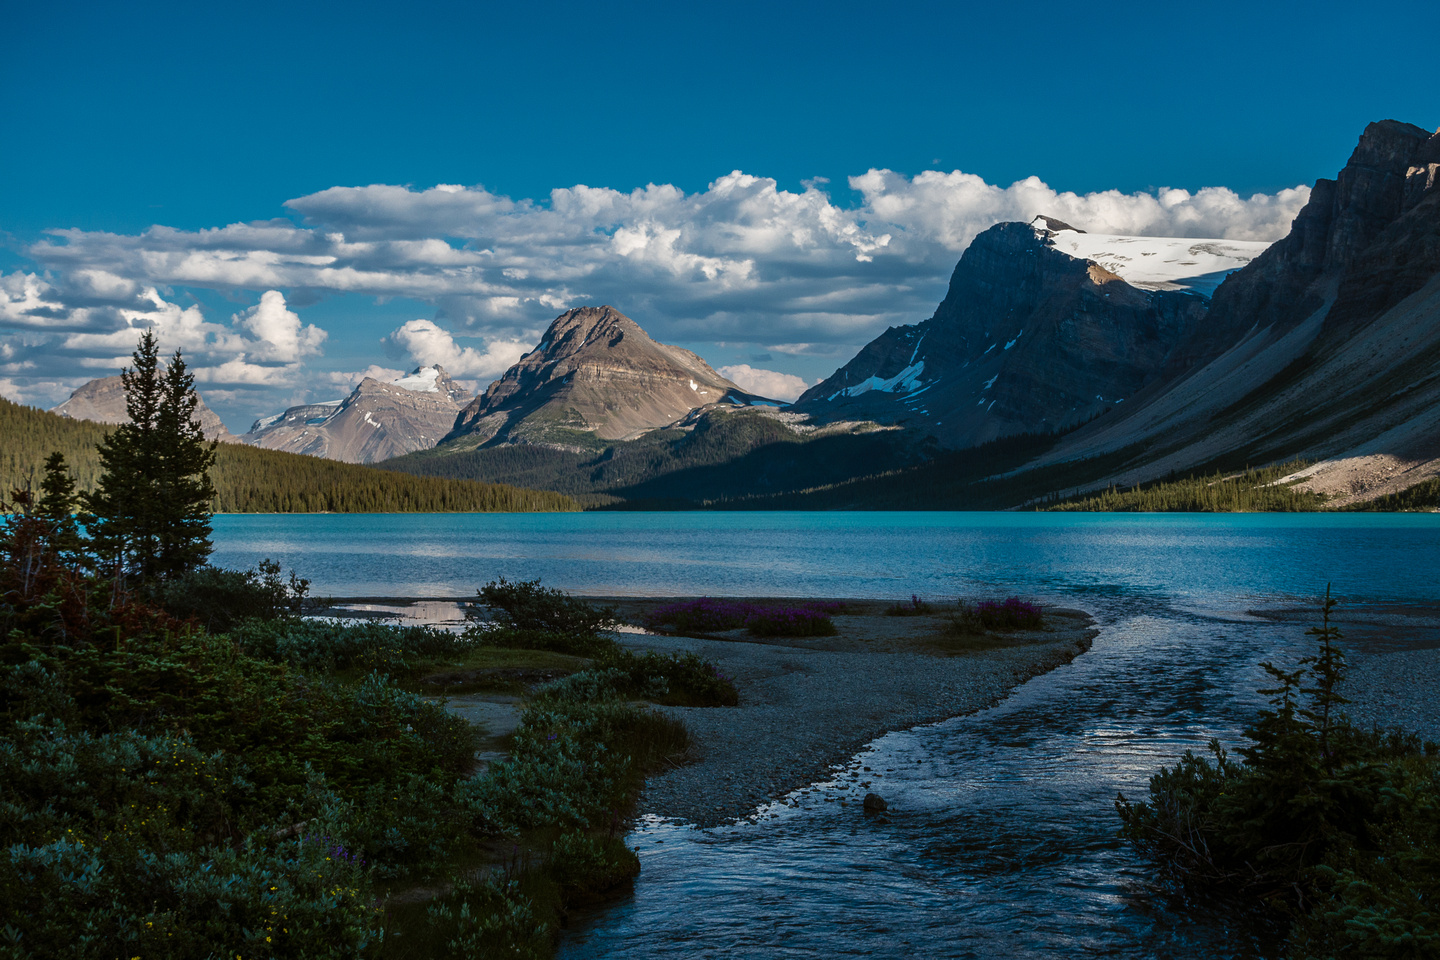 Hiking around Bow Lake as the afternoon shadows grow long.